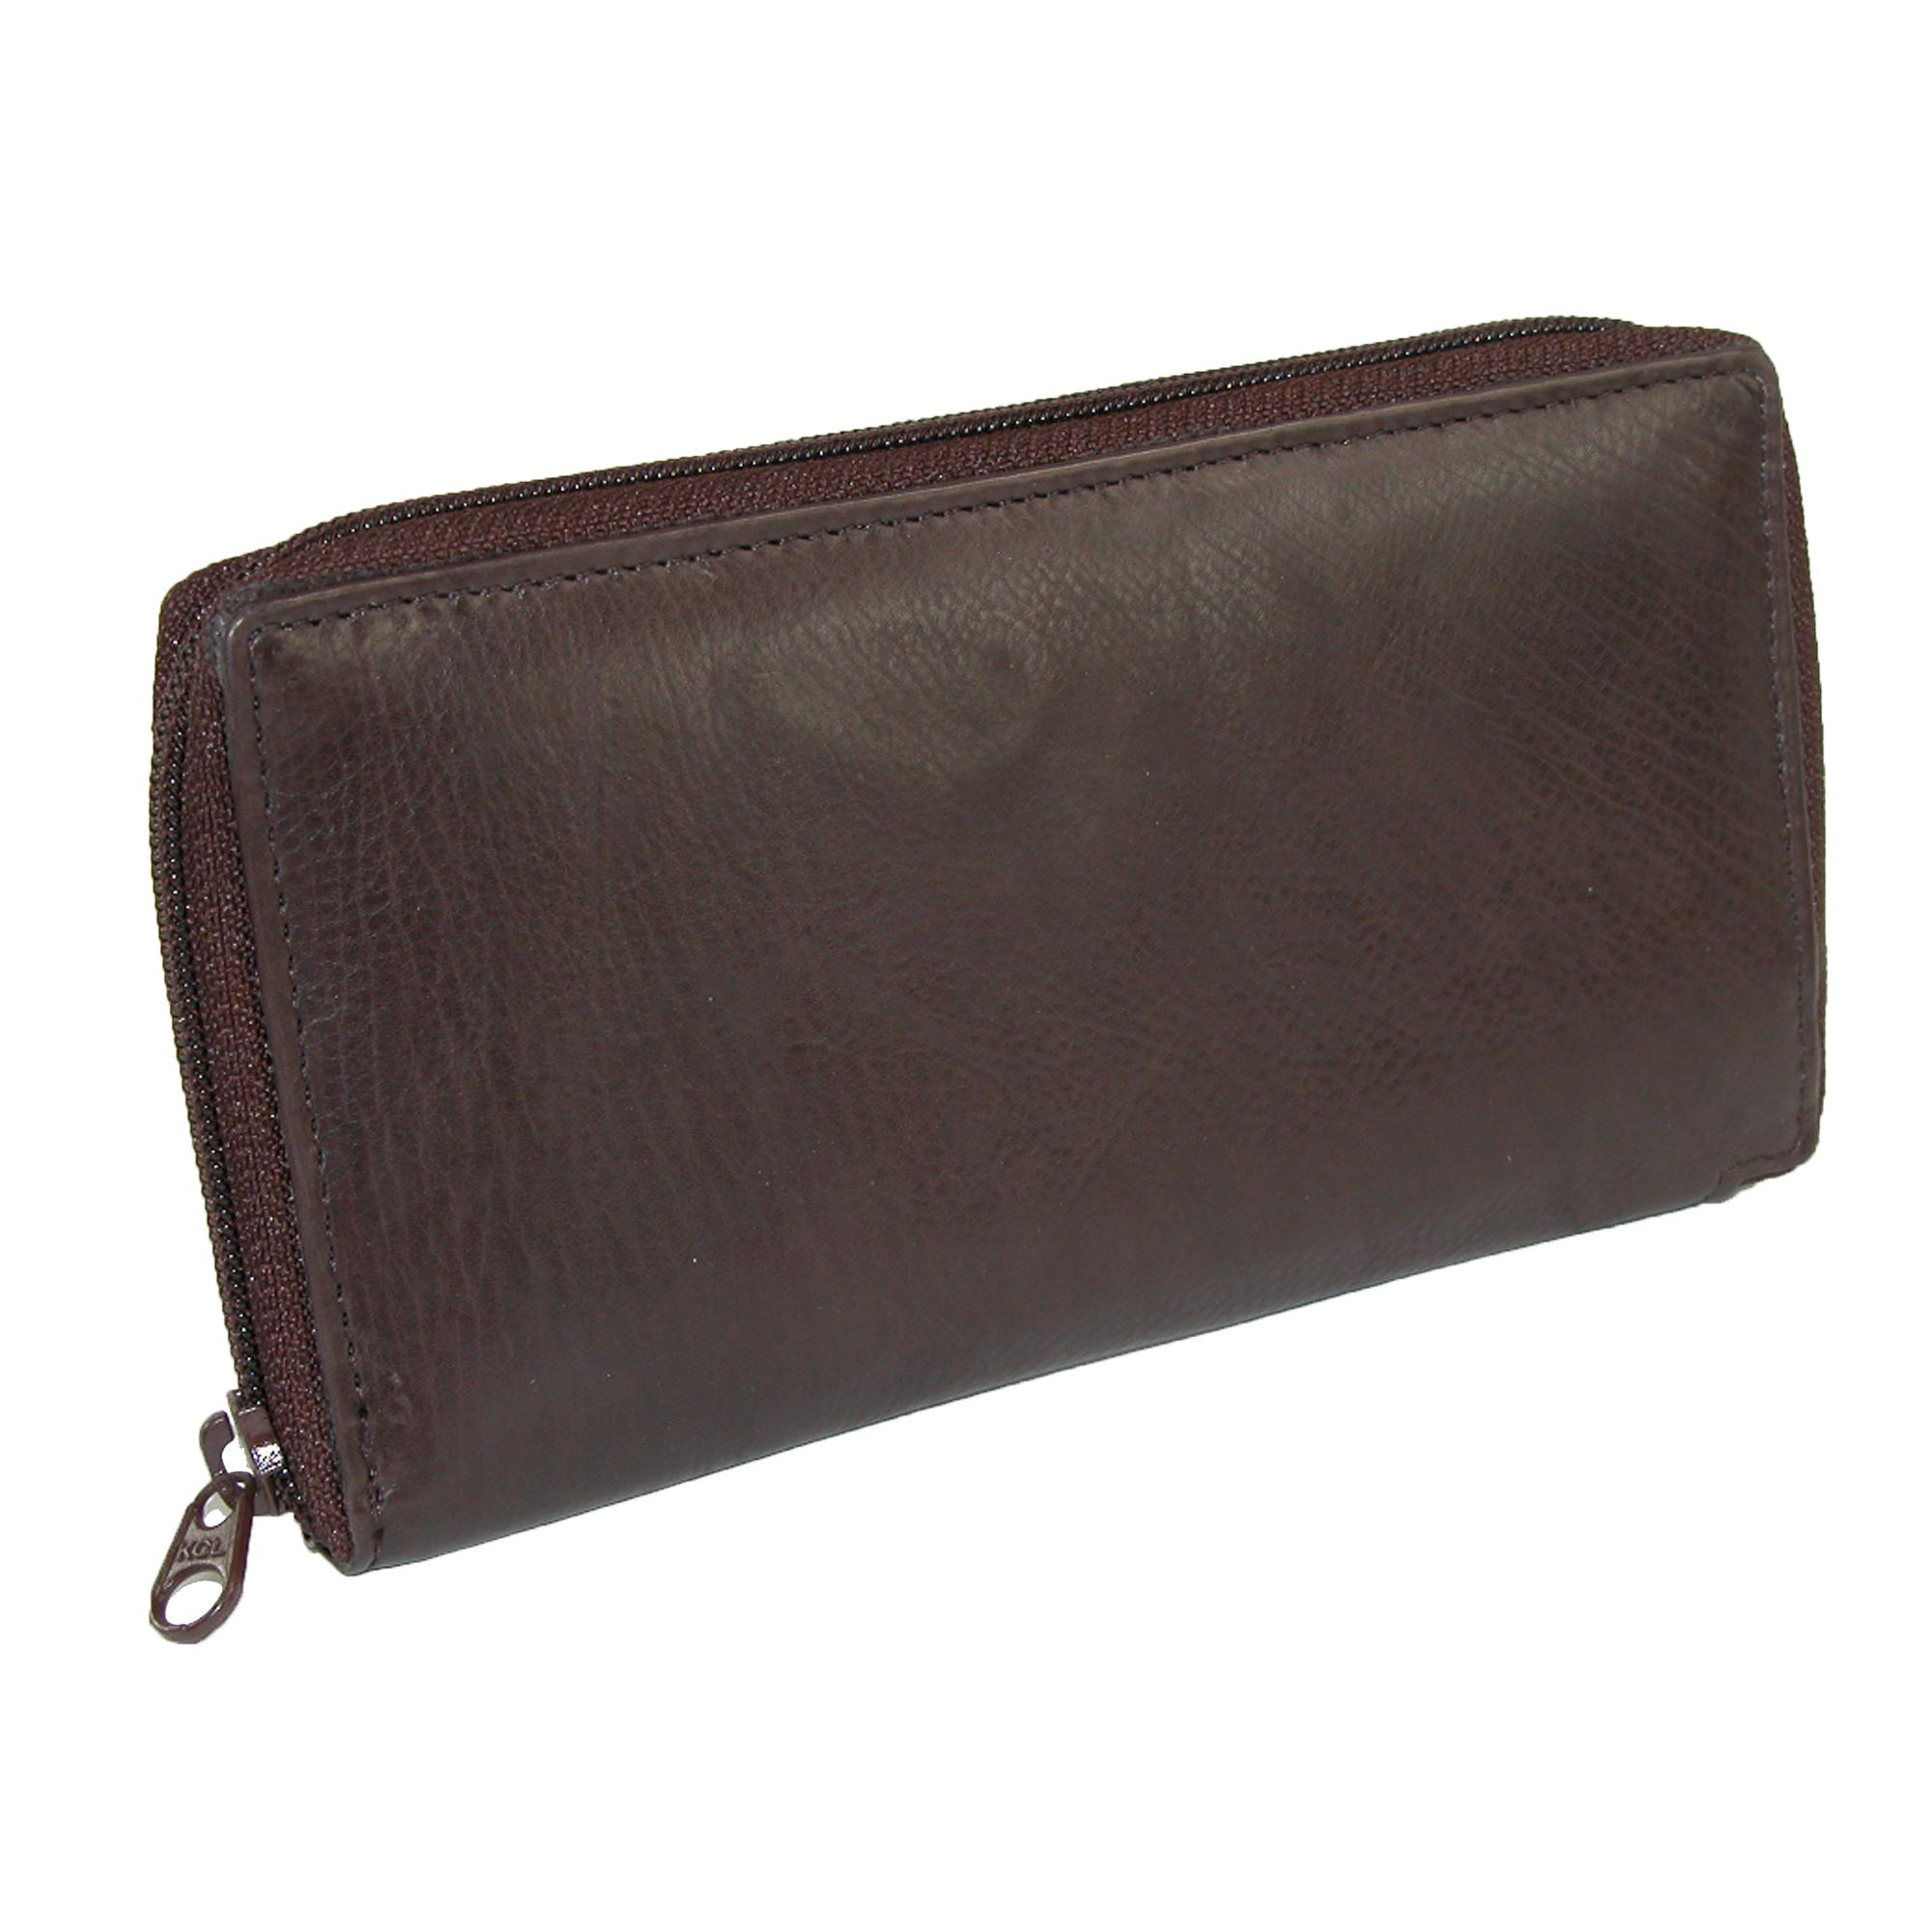 Paul_&_Taylor_Leather_Deluxe_Zip_Around_Checkbook_Cover_Wallet_-_Brown